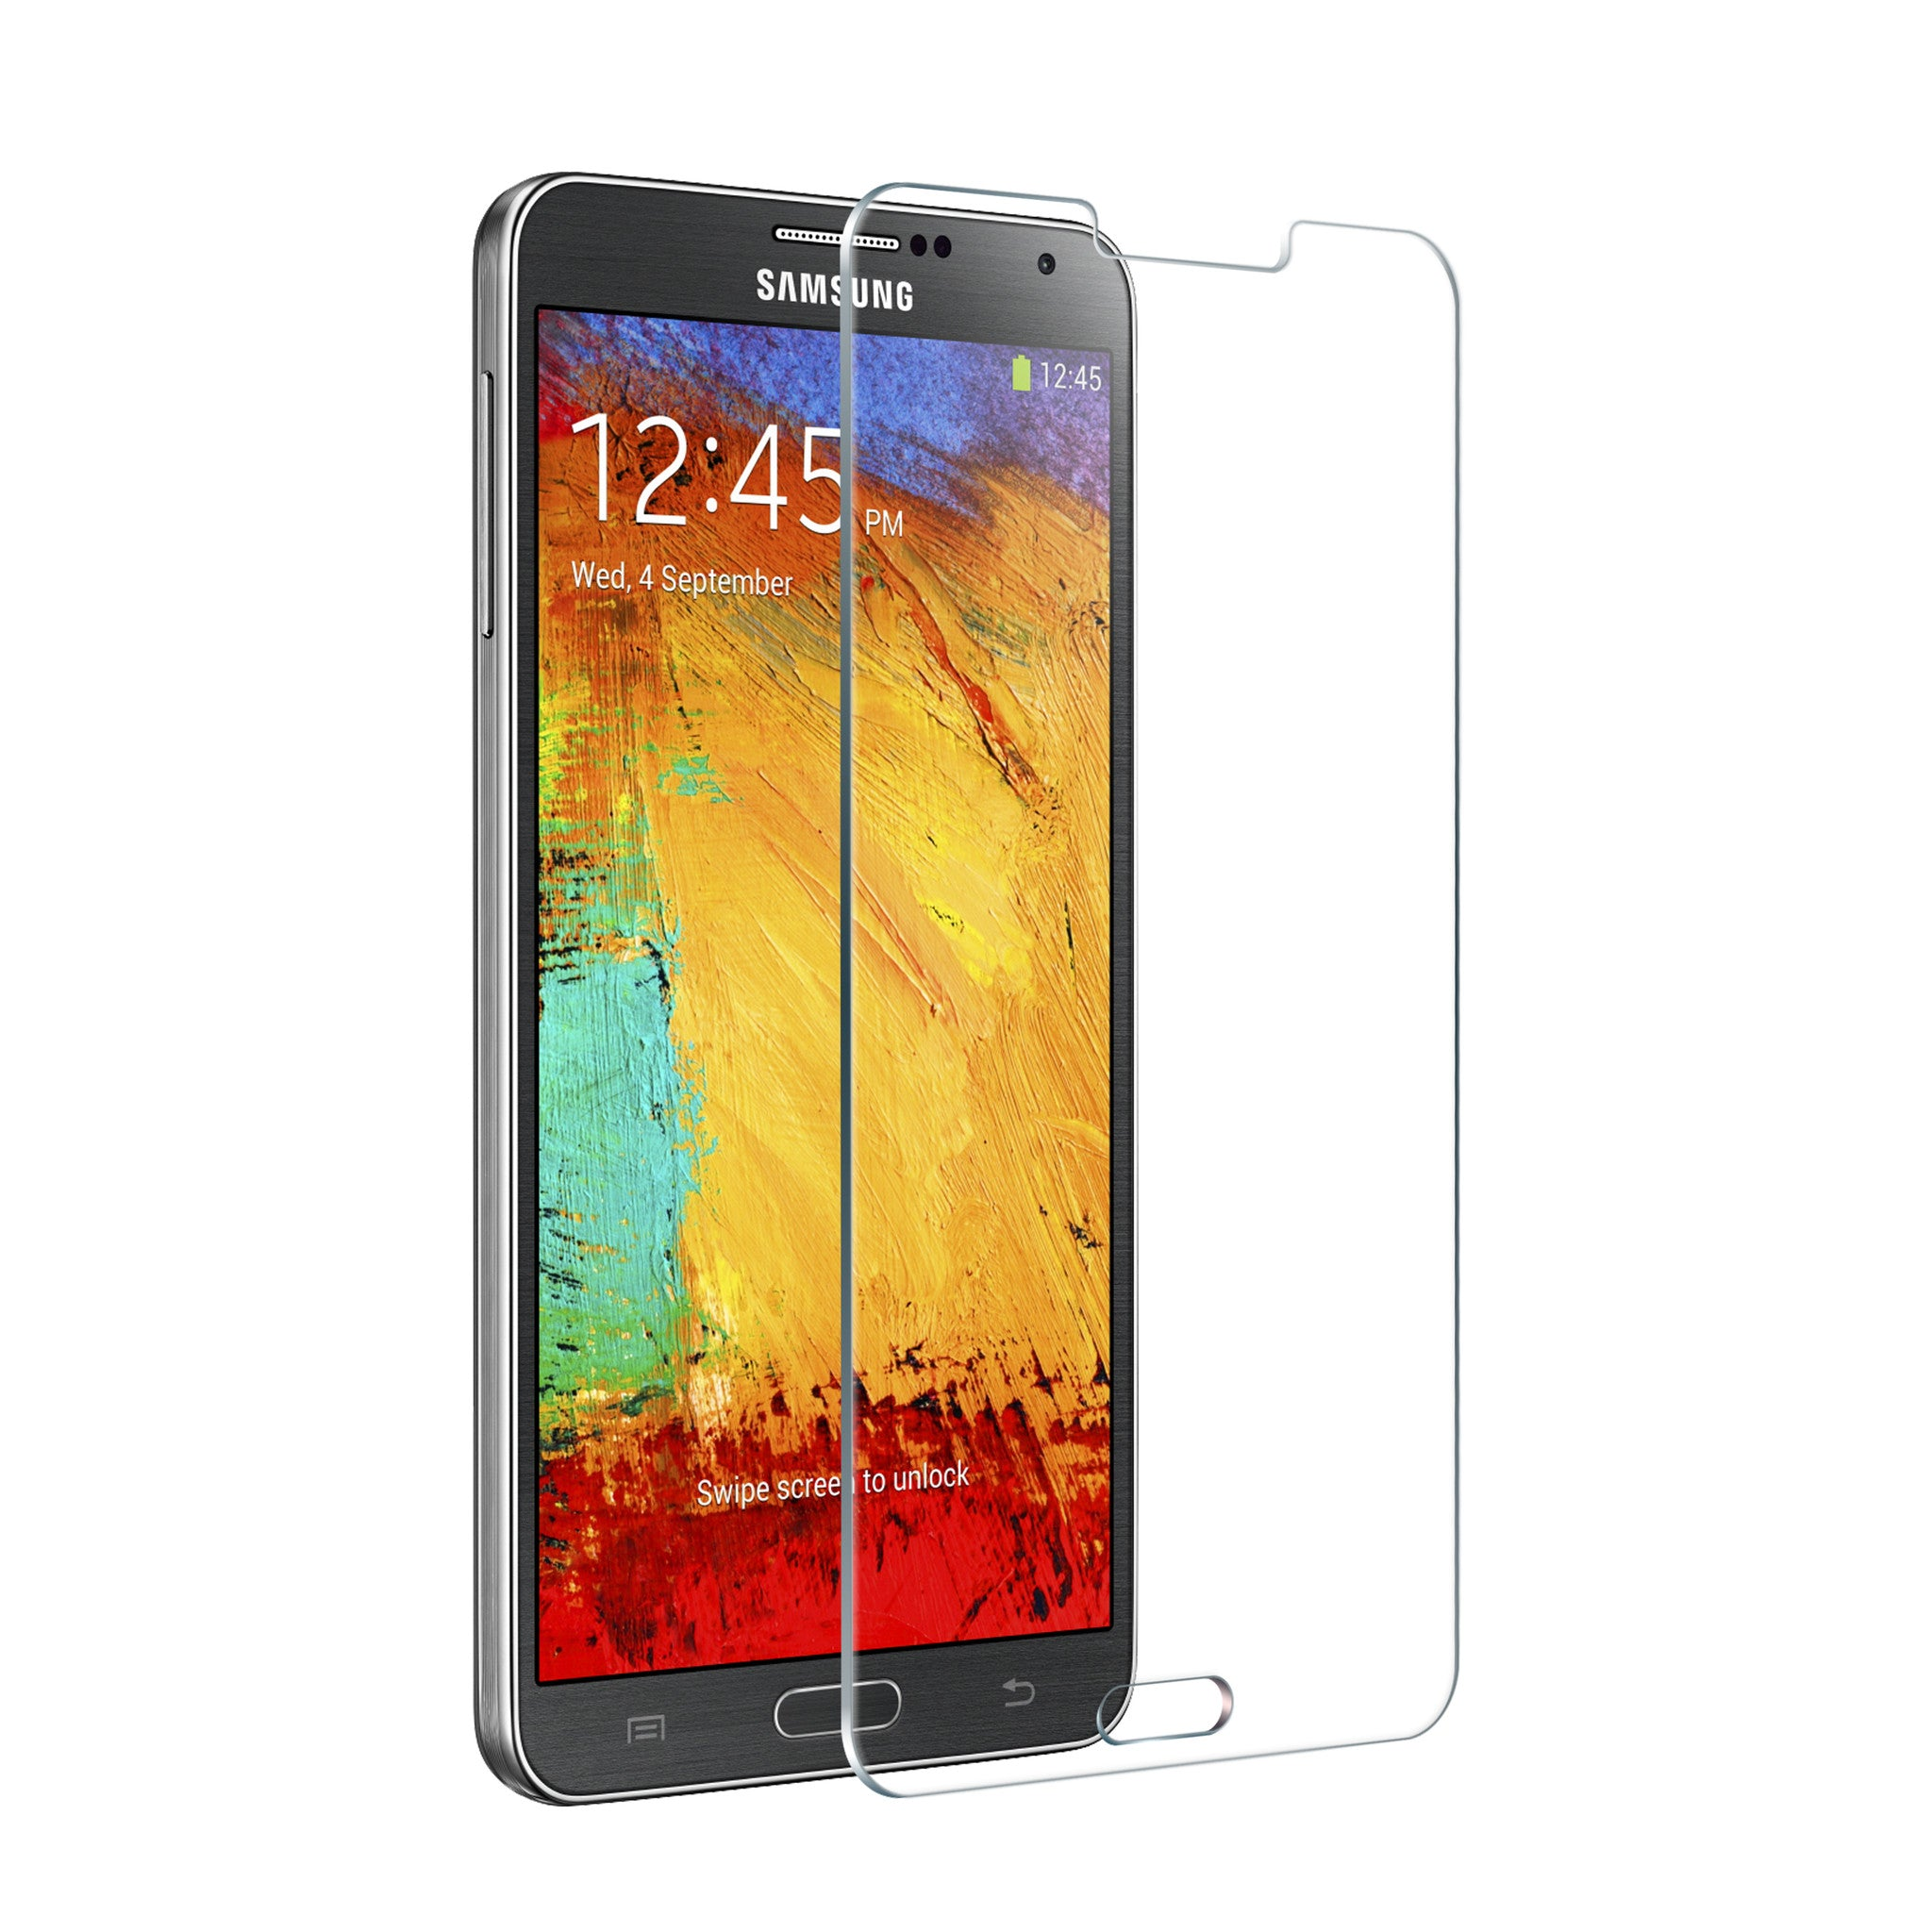 ITG PRO Tempered Glass for Galaxy Note 3 - Patchworks Global Inc  - 1